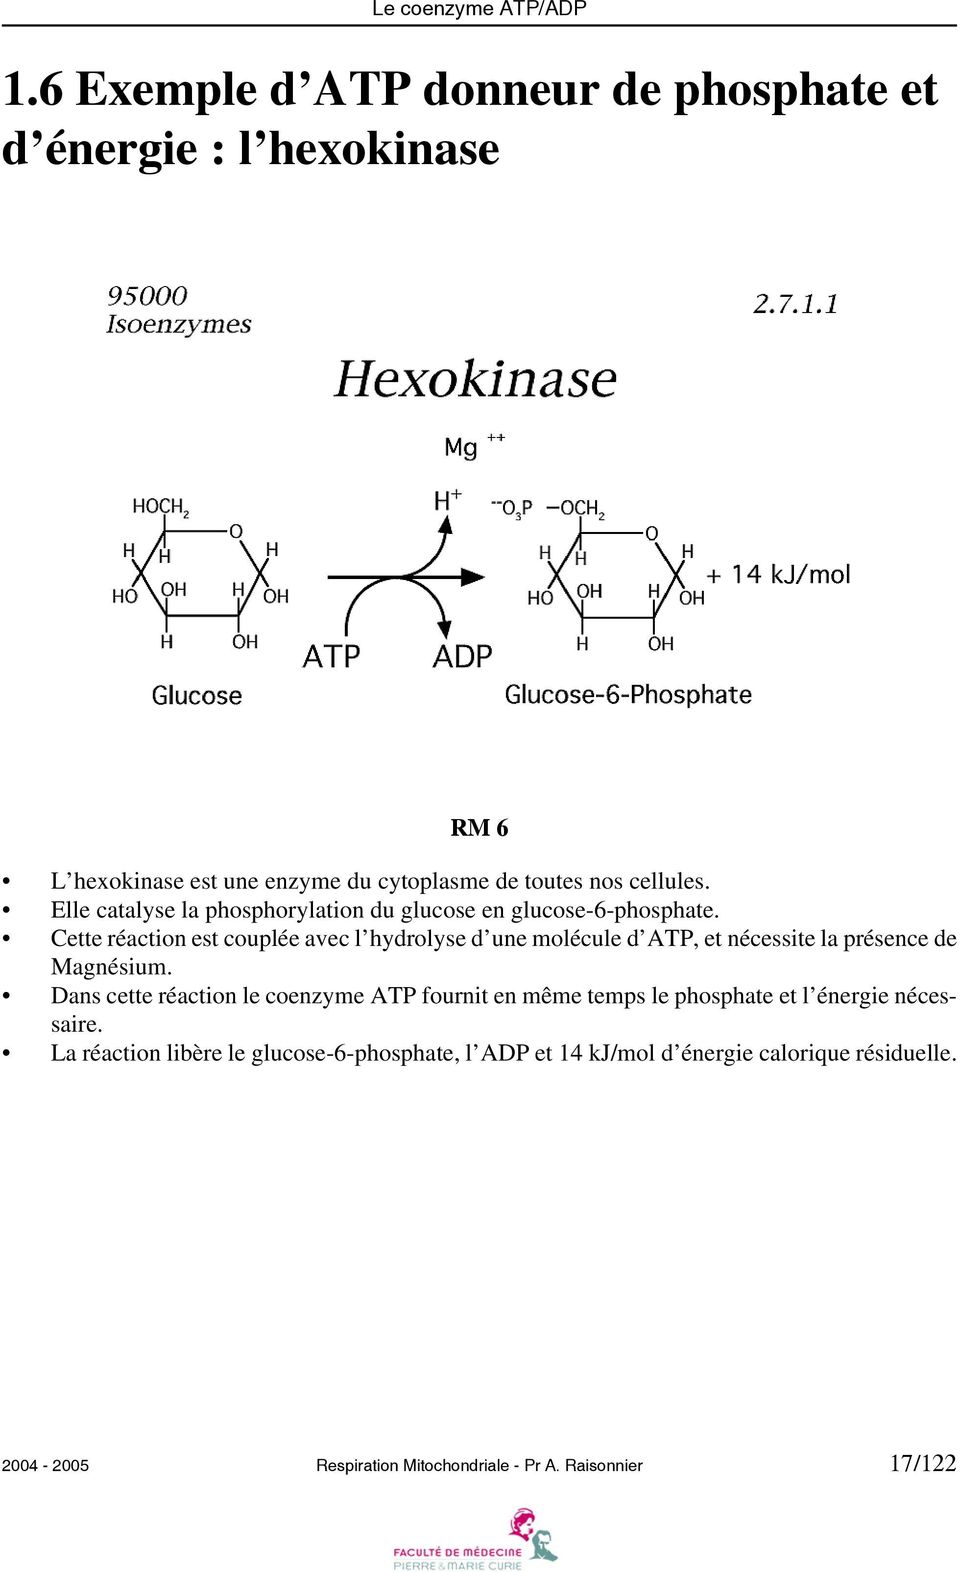 Elle catalyse la phosphorylation du glucose en glucose-6-phosphate.